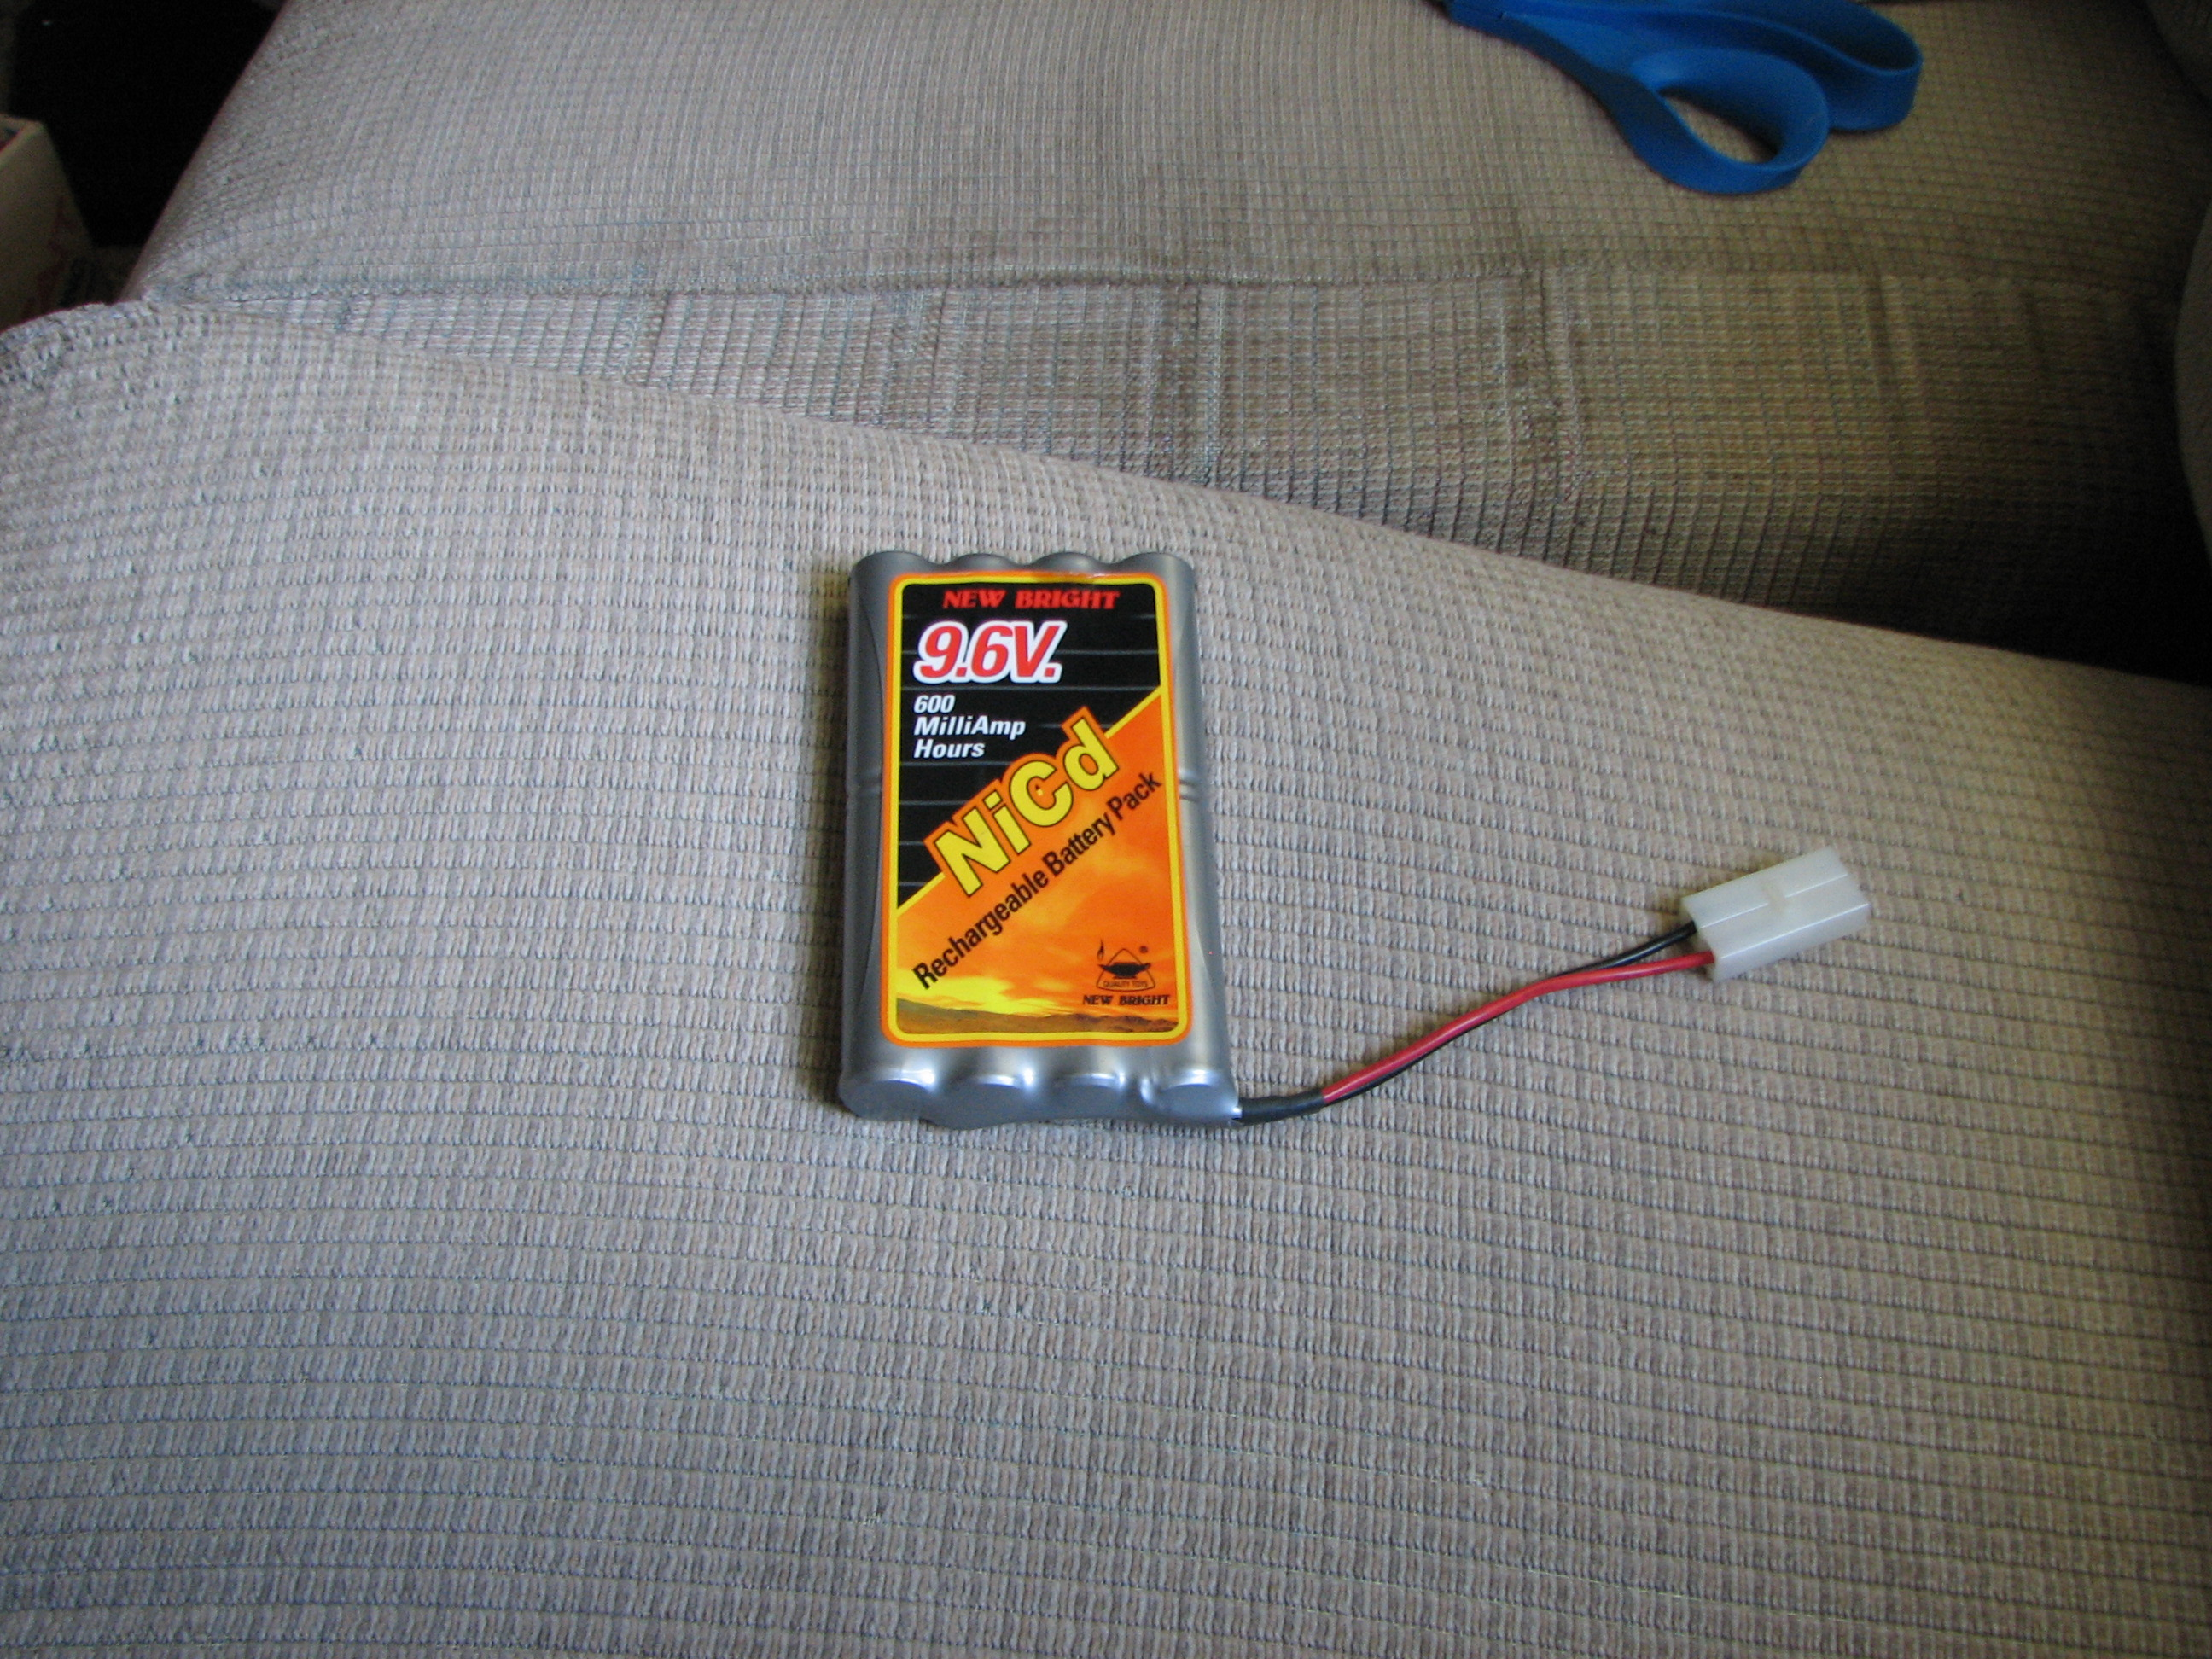 Repair A Thermally-Fused 9.6v Battery Pack